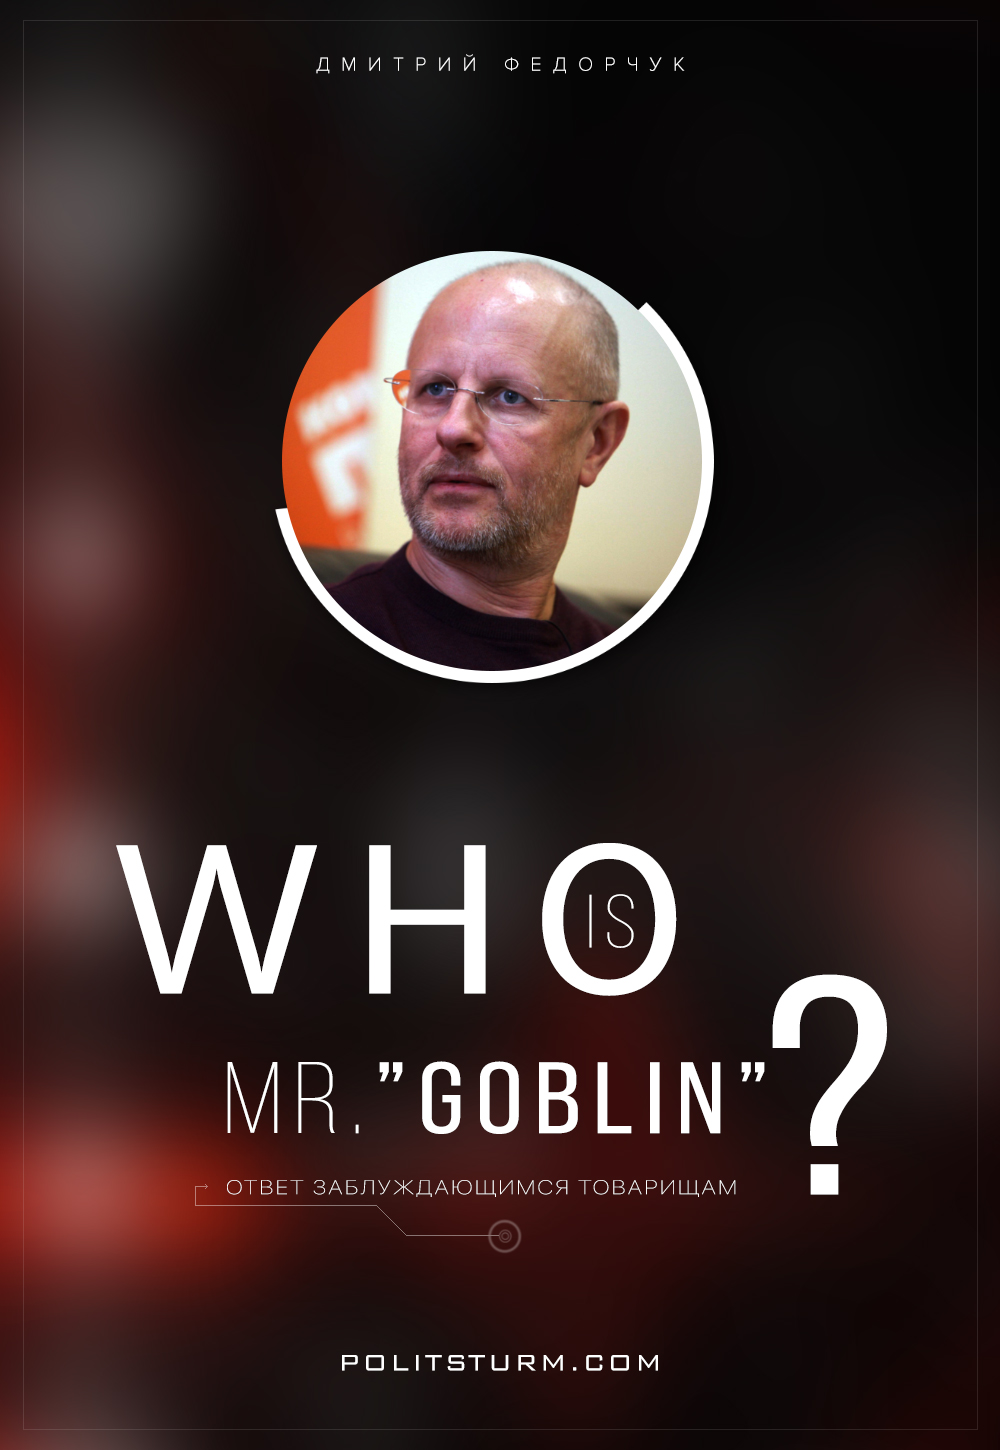 Who is mr. «Goblin»?